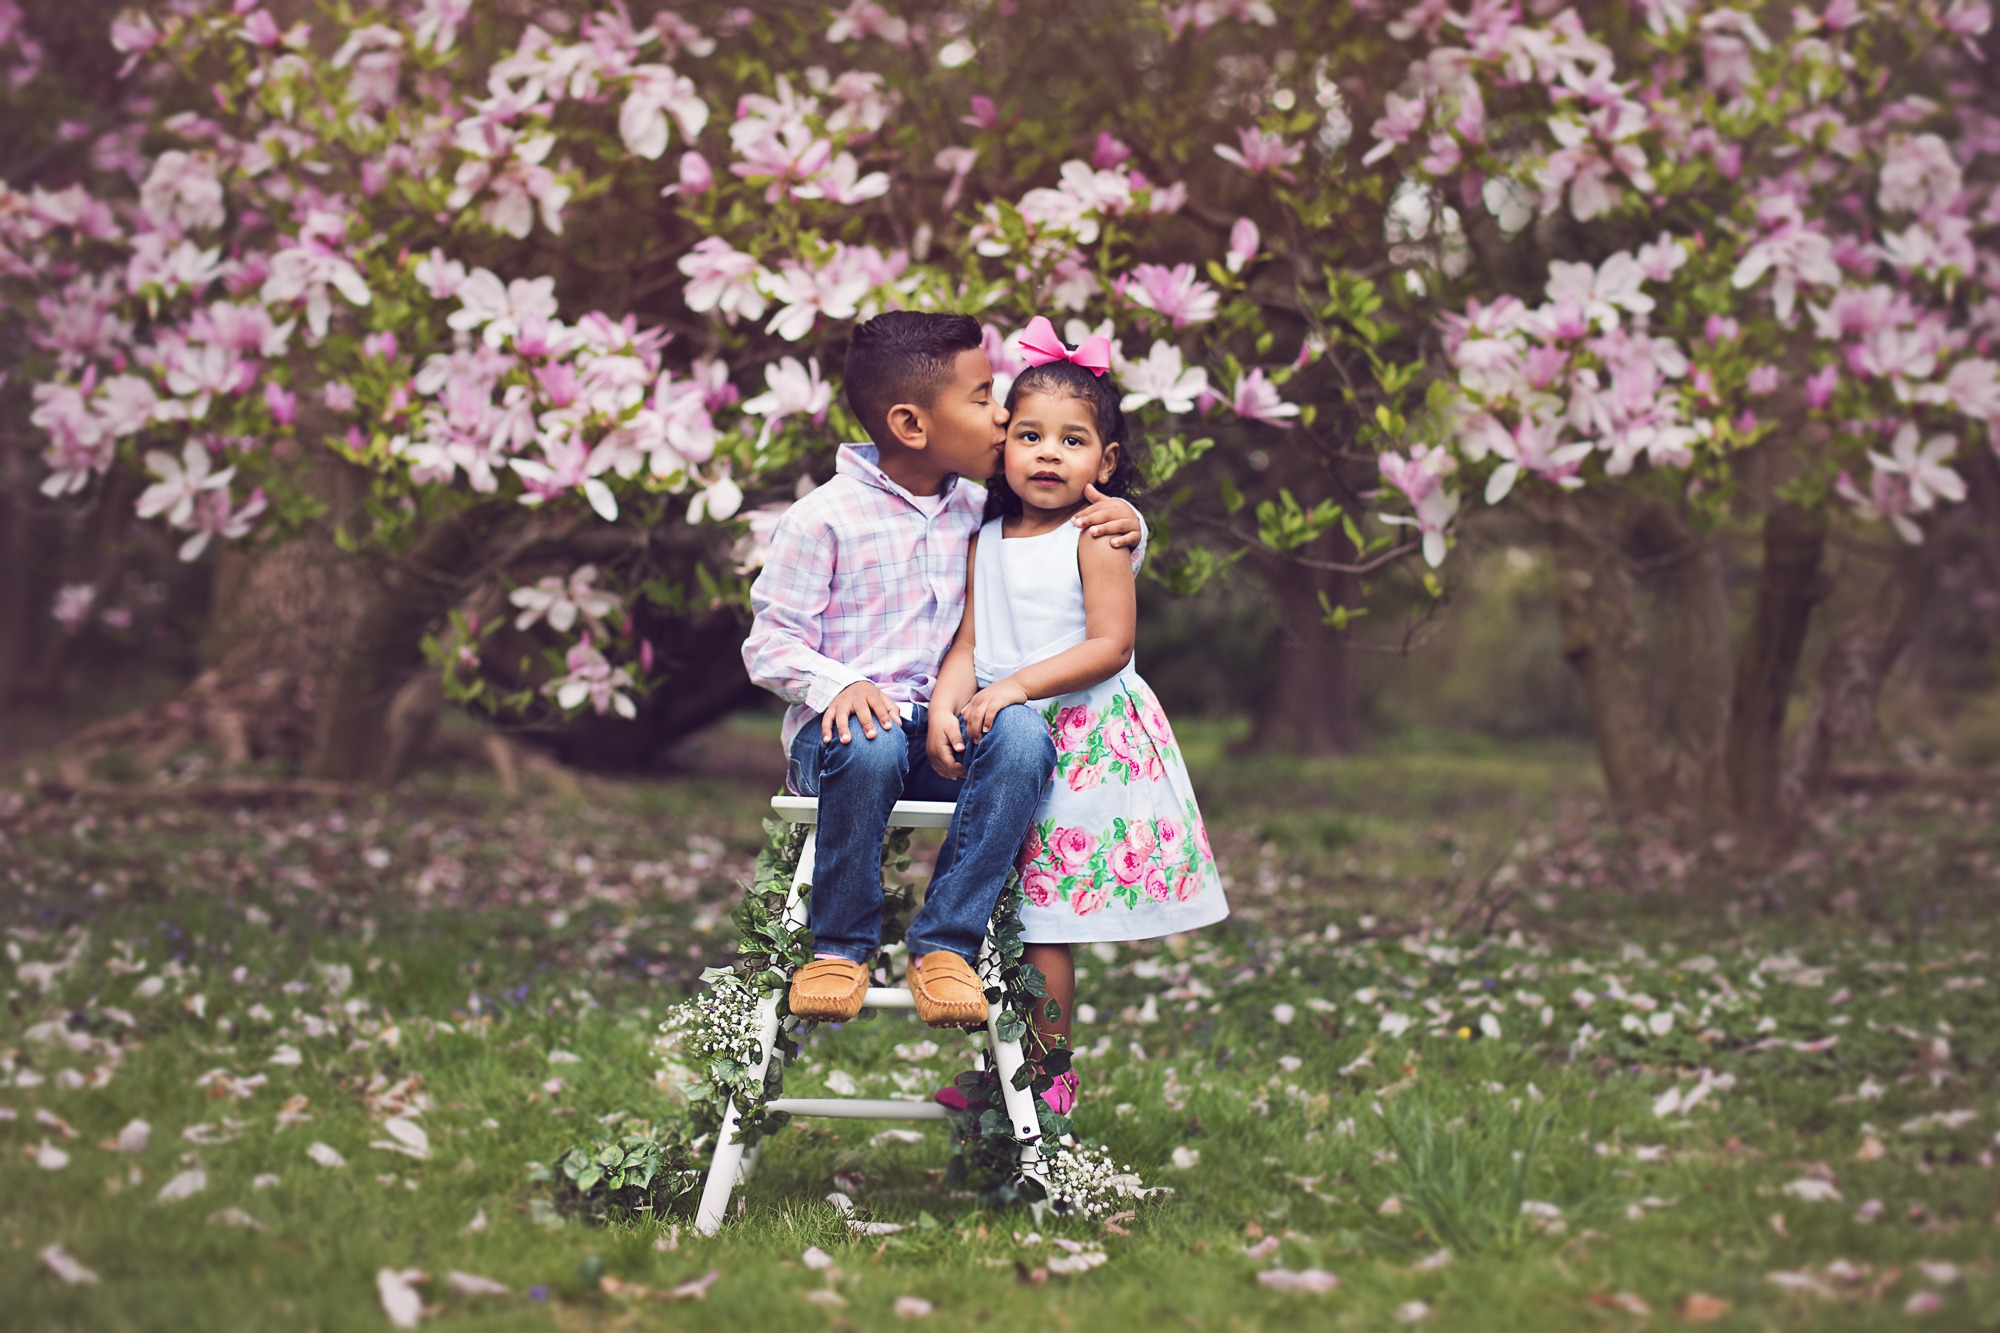 Siblings in outdoor session with magnolia tree